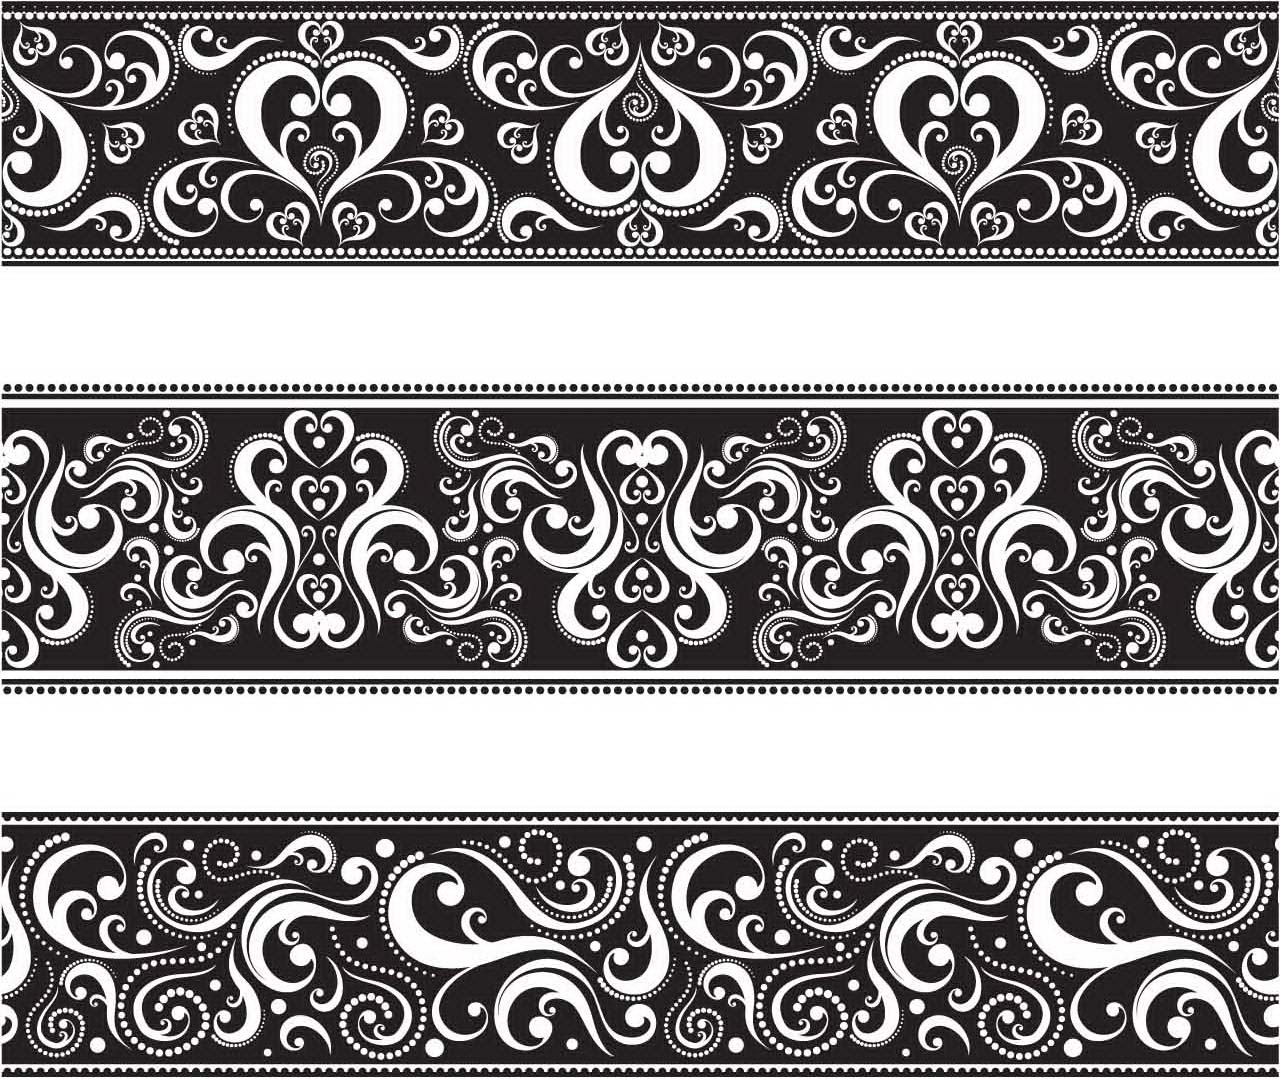 Seamless monochrome floral borders vector